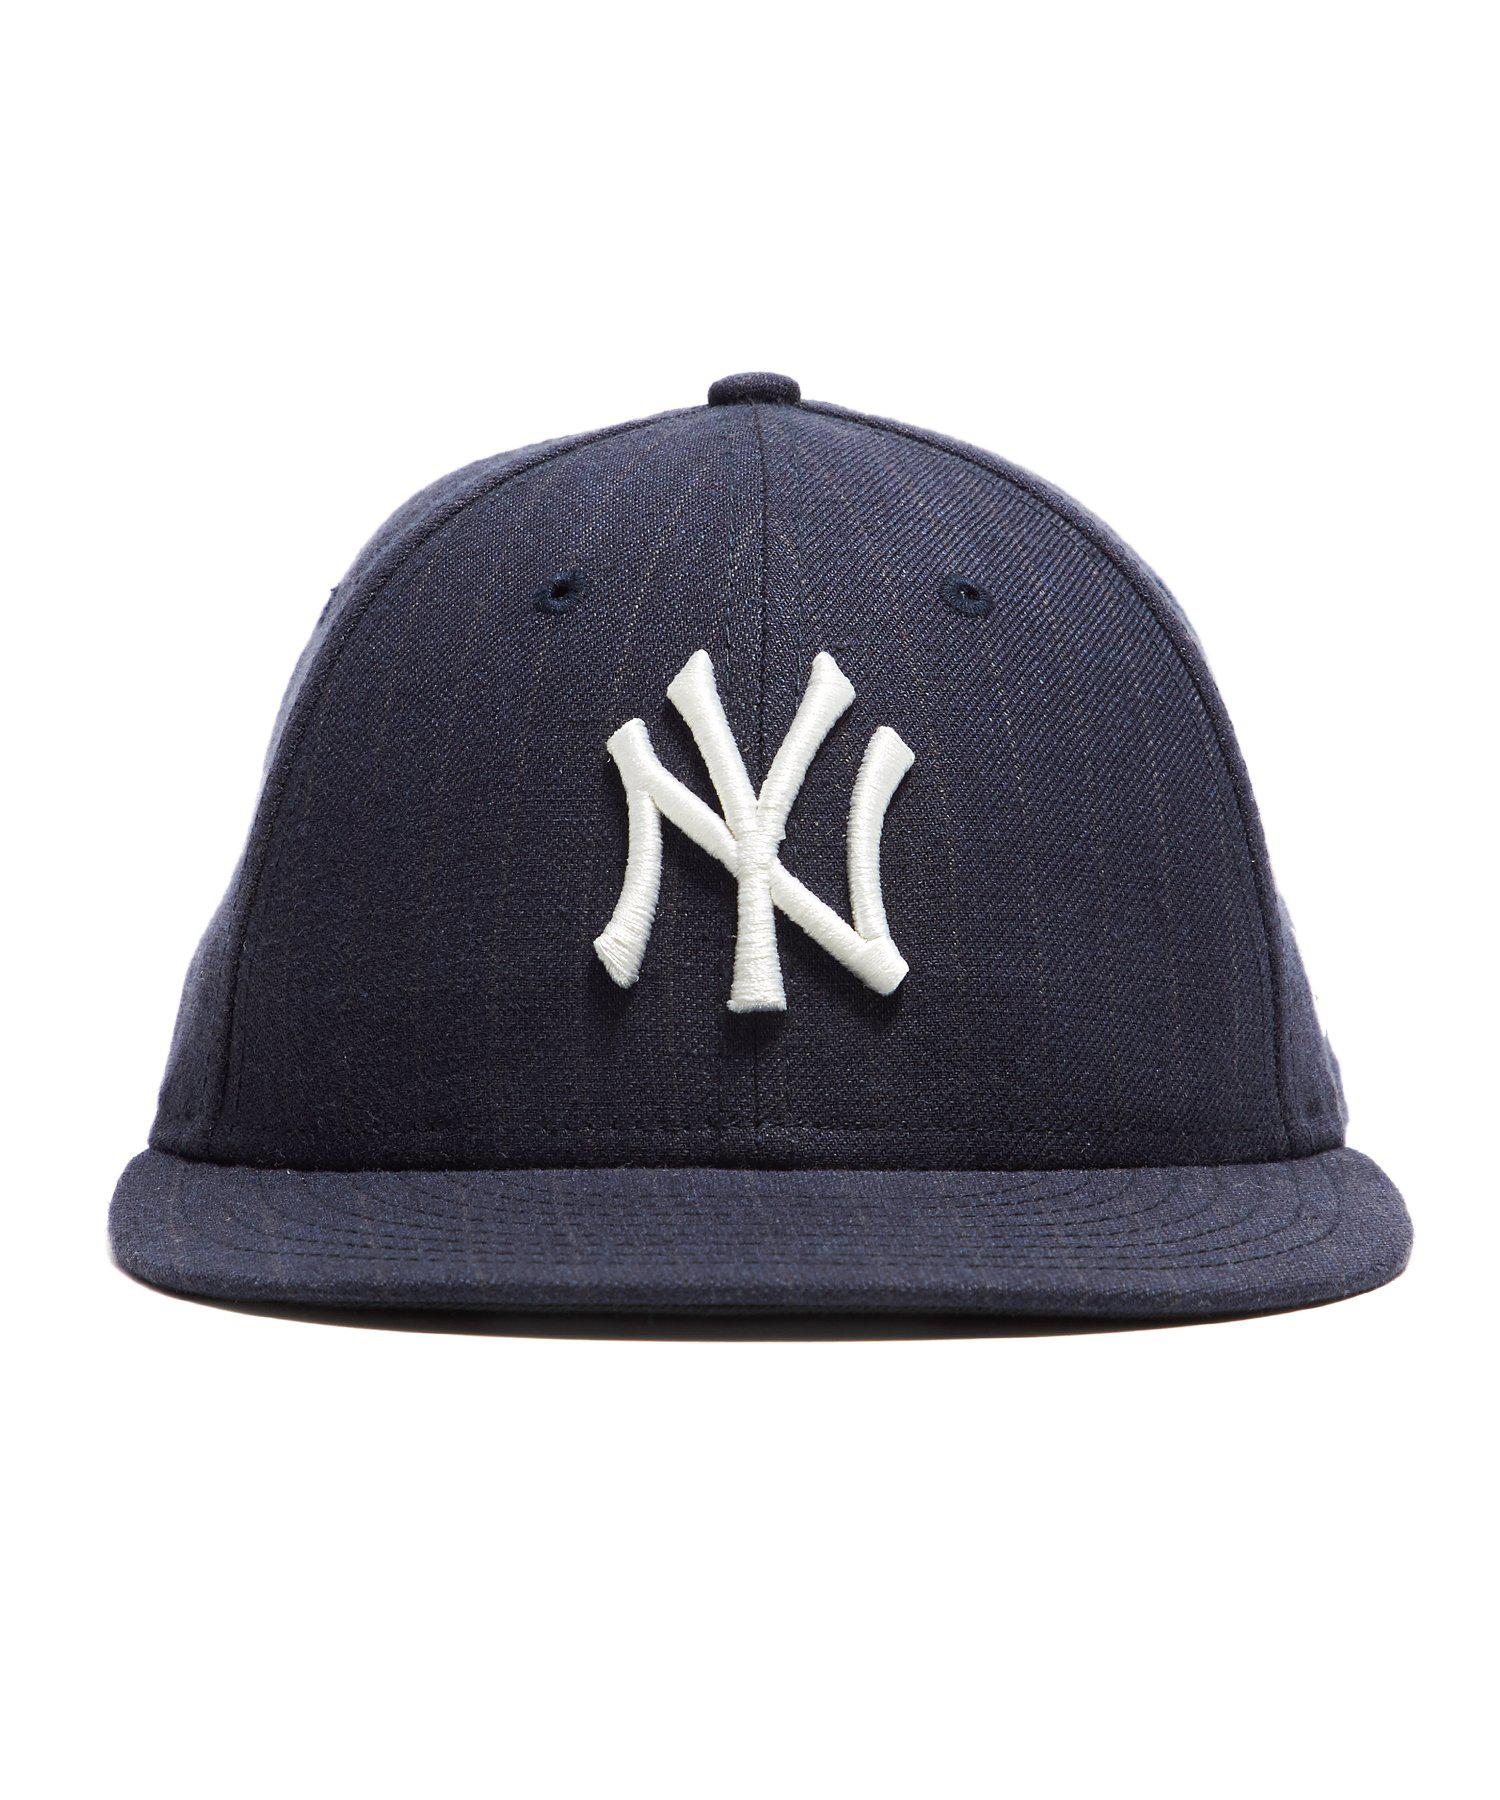 07aff883ec7 NEW ERA HATS. Men s Blue New York Yankees Cap In Navy Pinstripe. £62 £47  From Todd Snyder